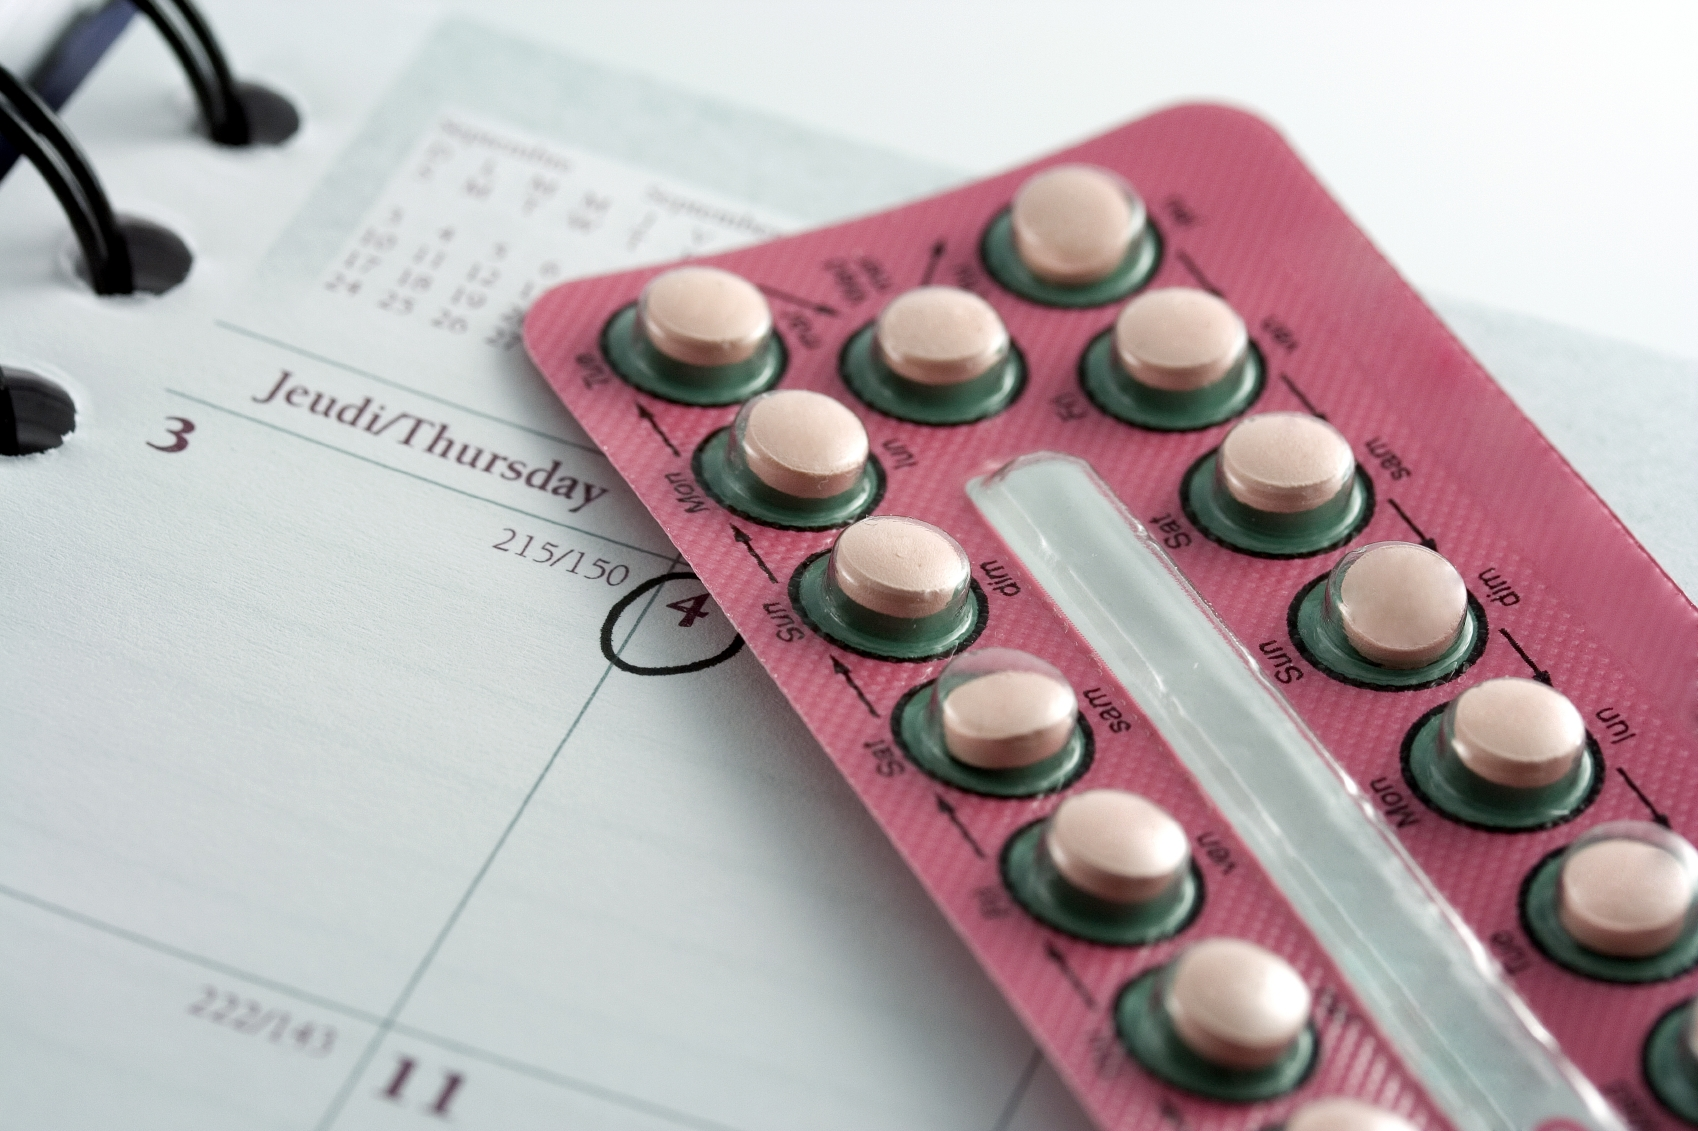 Hobby Lobby Ruling: Bigger Than Birth Control